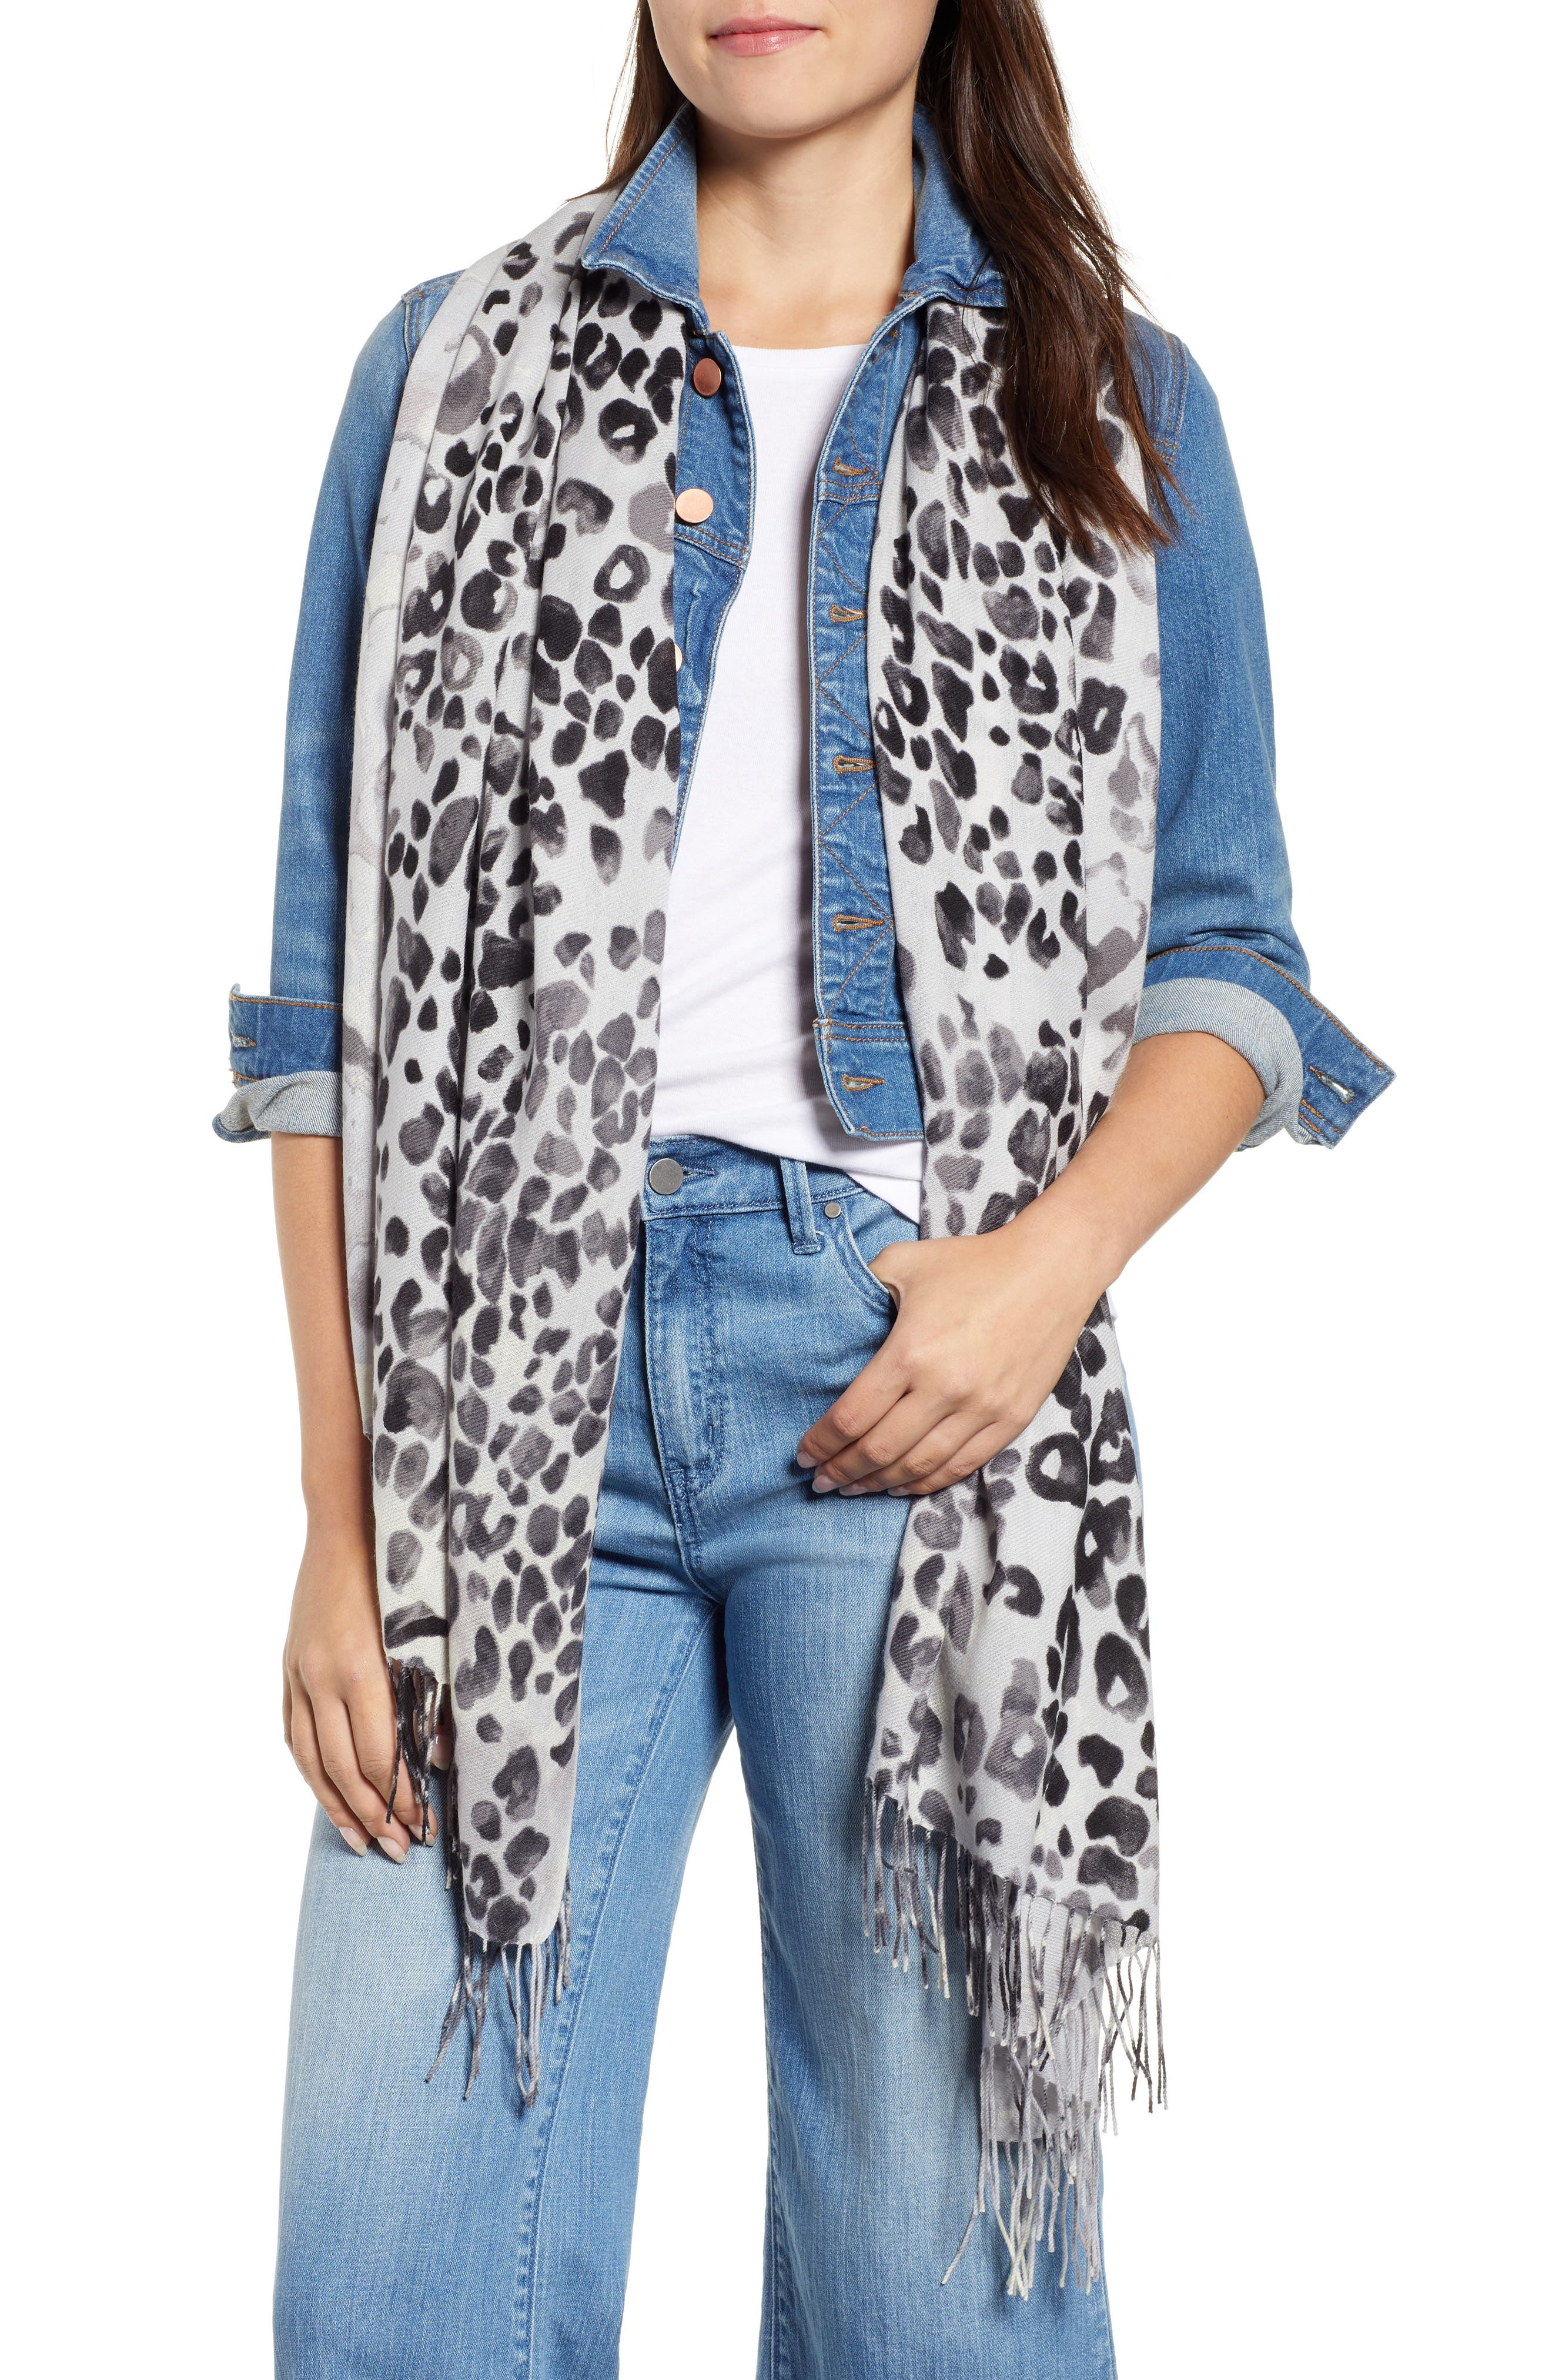 NORDSTROM, Tissue Print Wool & Cashmere Wrap Scarf, Main thumbnail 1, color, 001